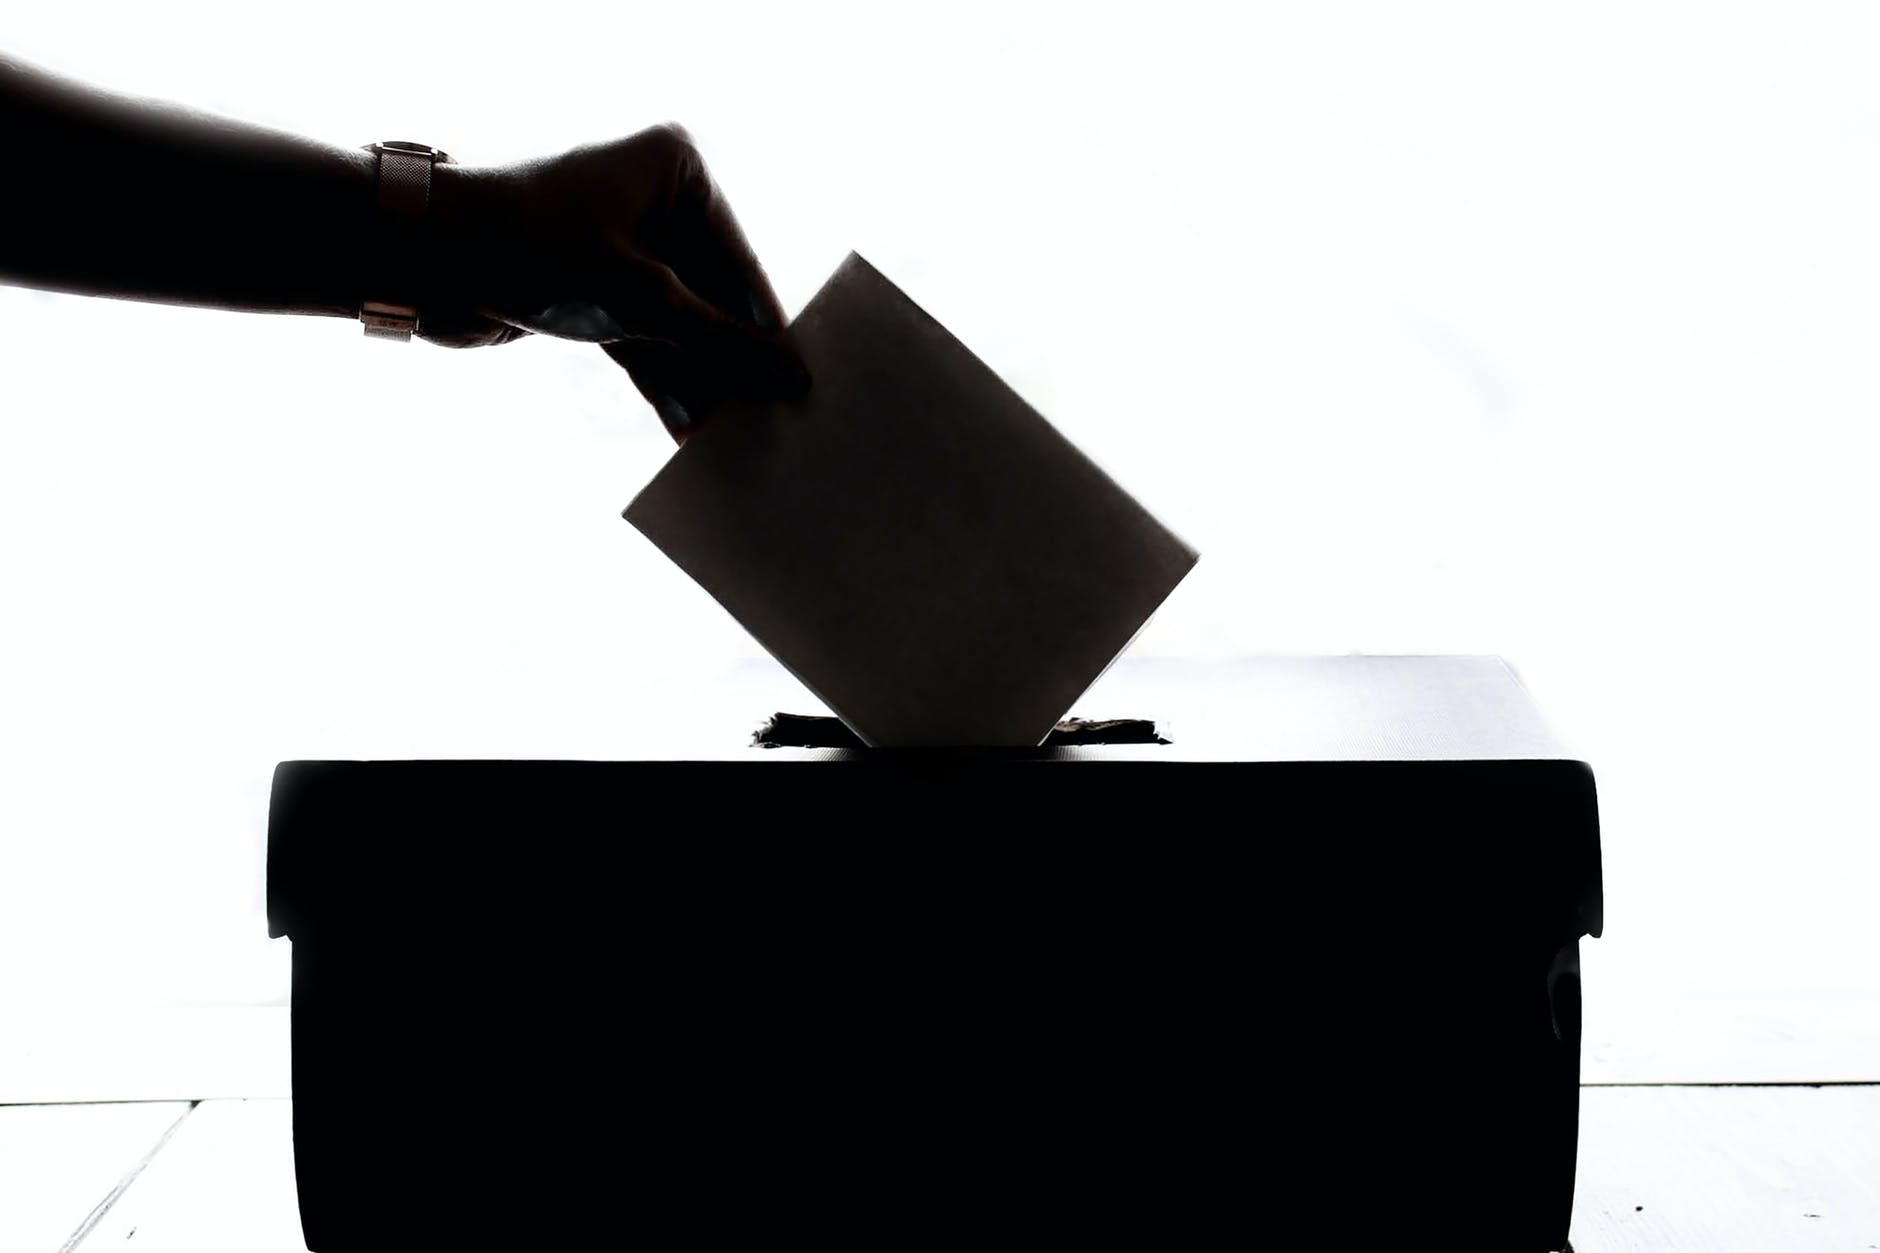 A silhouette of a hand putting a ballot into a box.